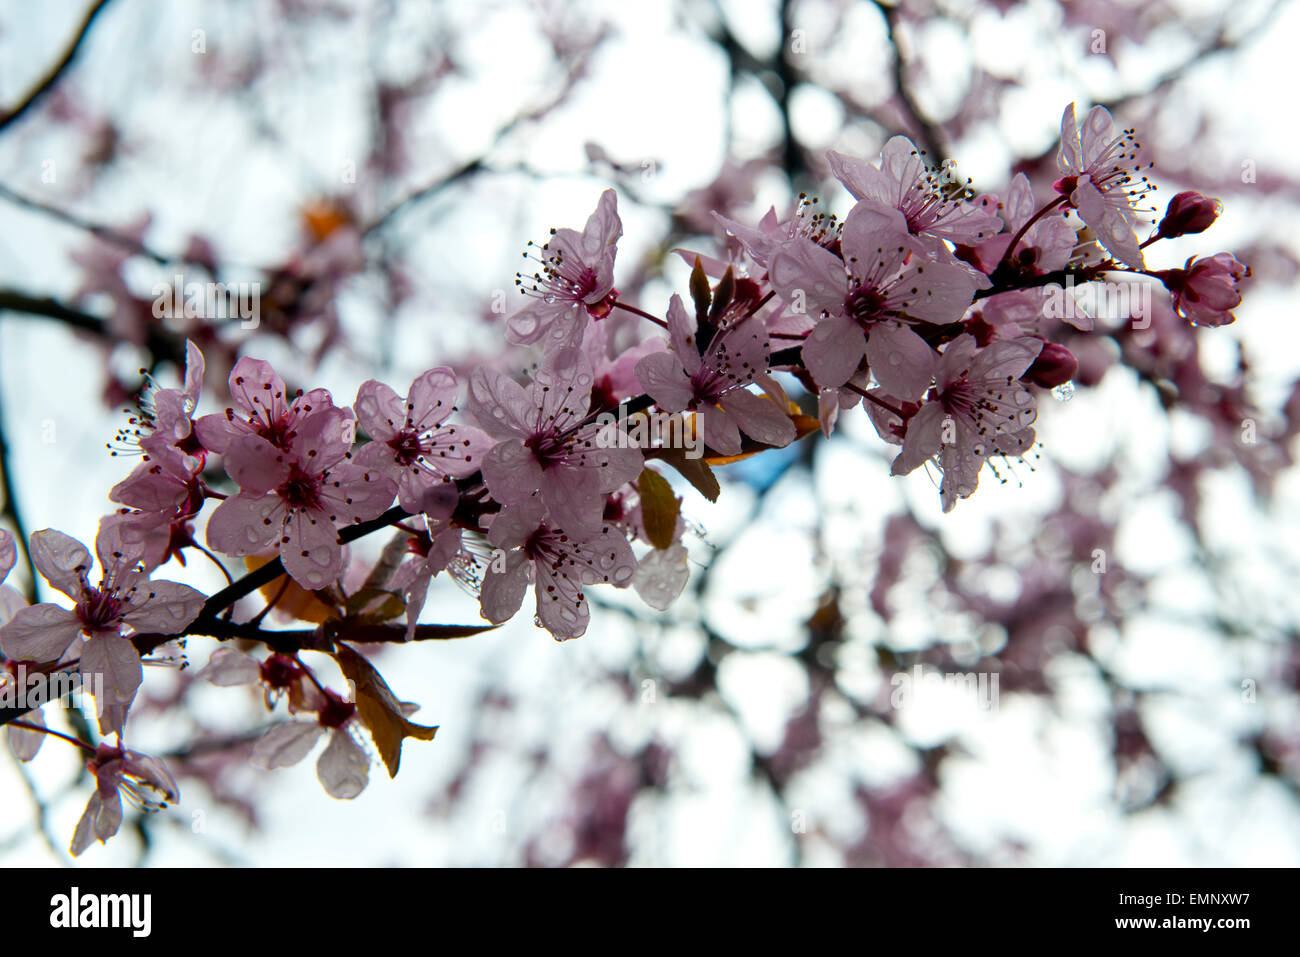 Pink flowers on a cherry plum tree prunus cerasifera pissaardii pink flowers on a cherry plum tree prunus cerasifera pissaardii with dark red leaves flowering in early spring mightylinksfo